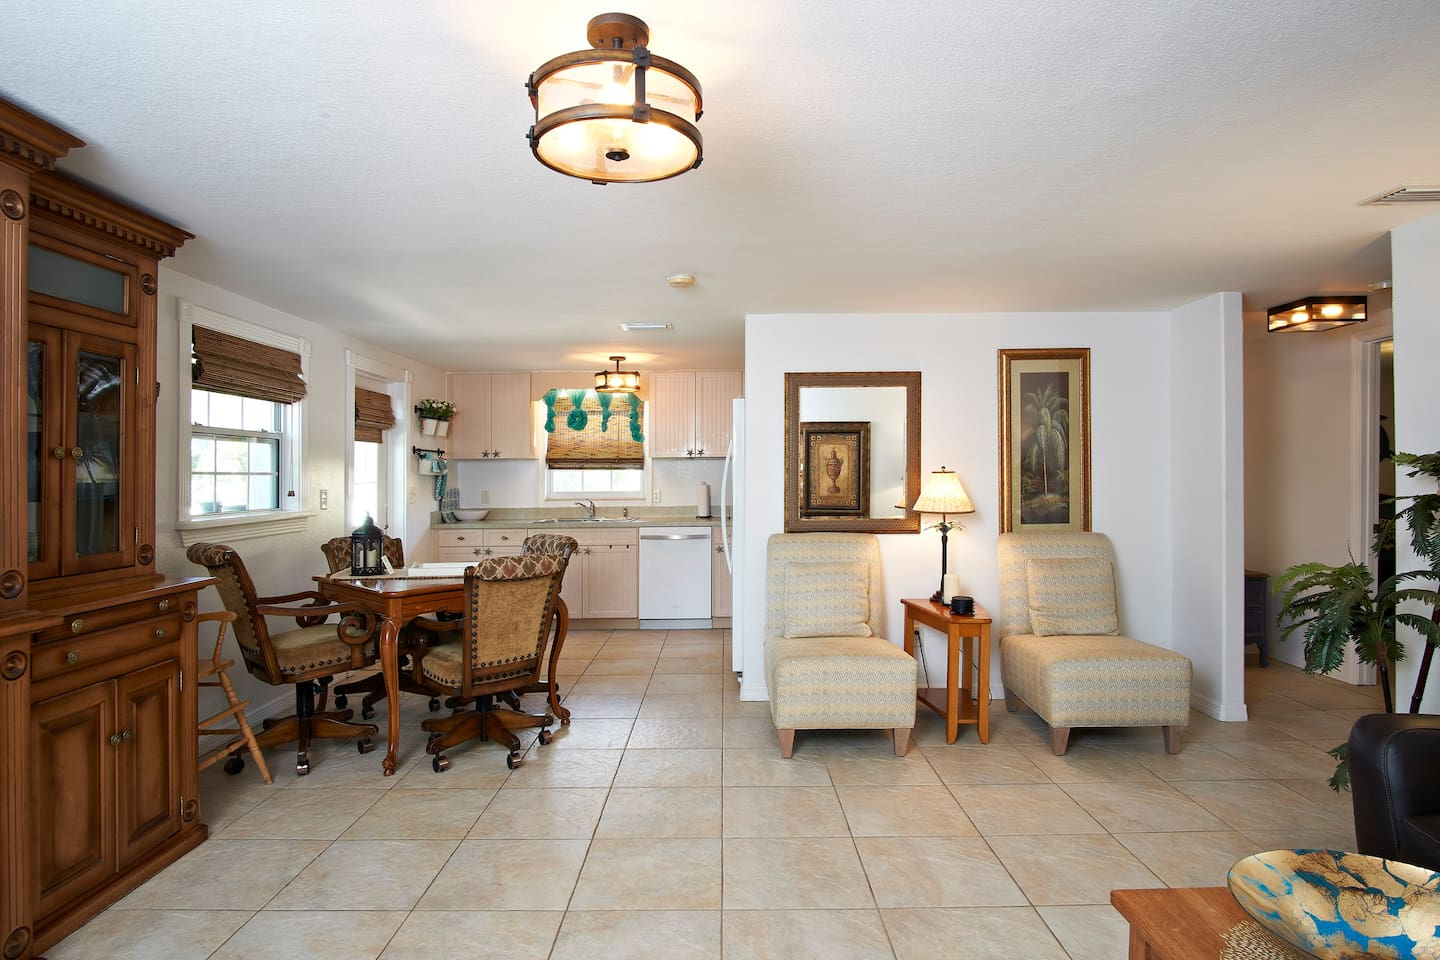 Fully equipped kitchen for modest meals. Dining table doubles as a game table.